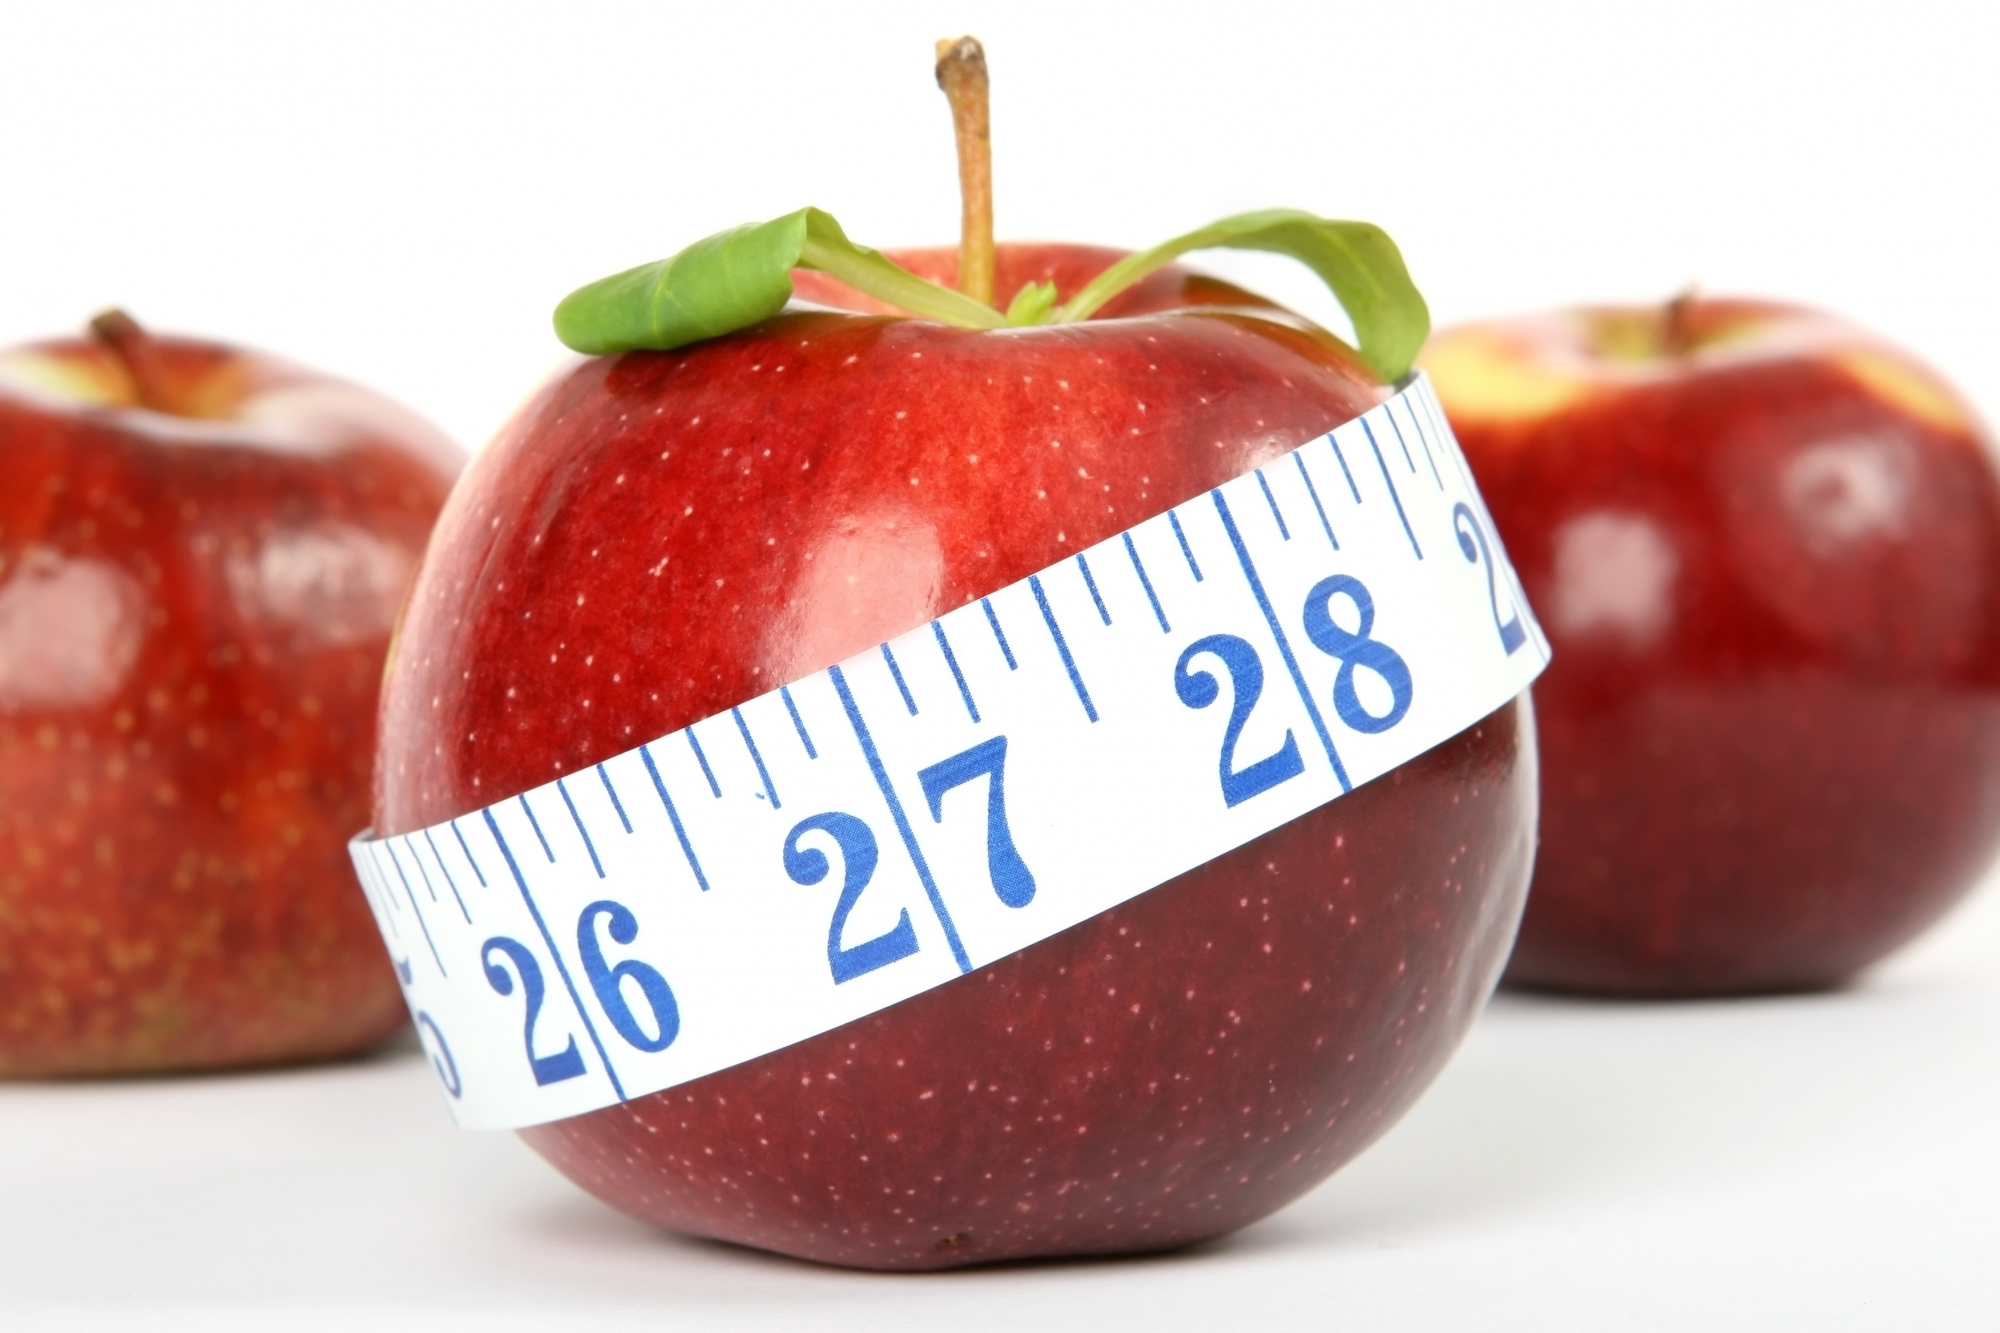 Low-calorie diet may improve cell performance